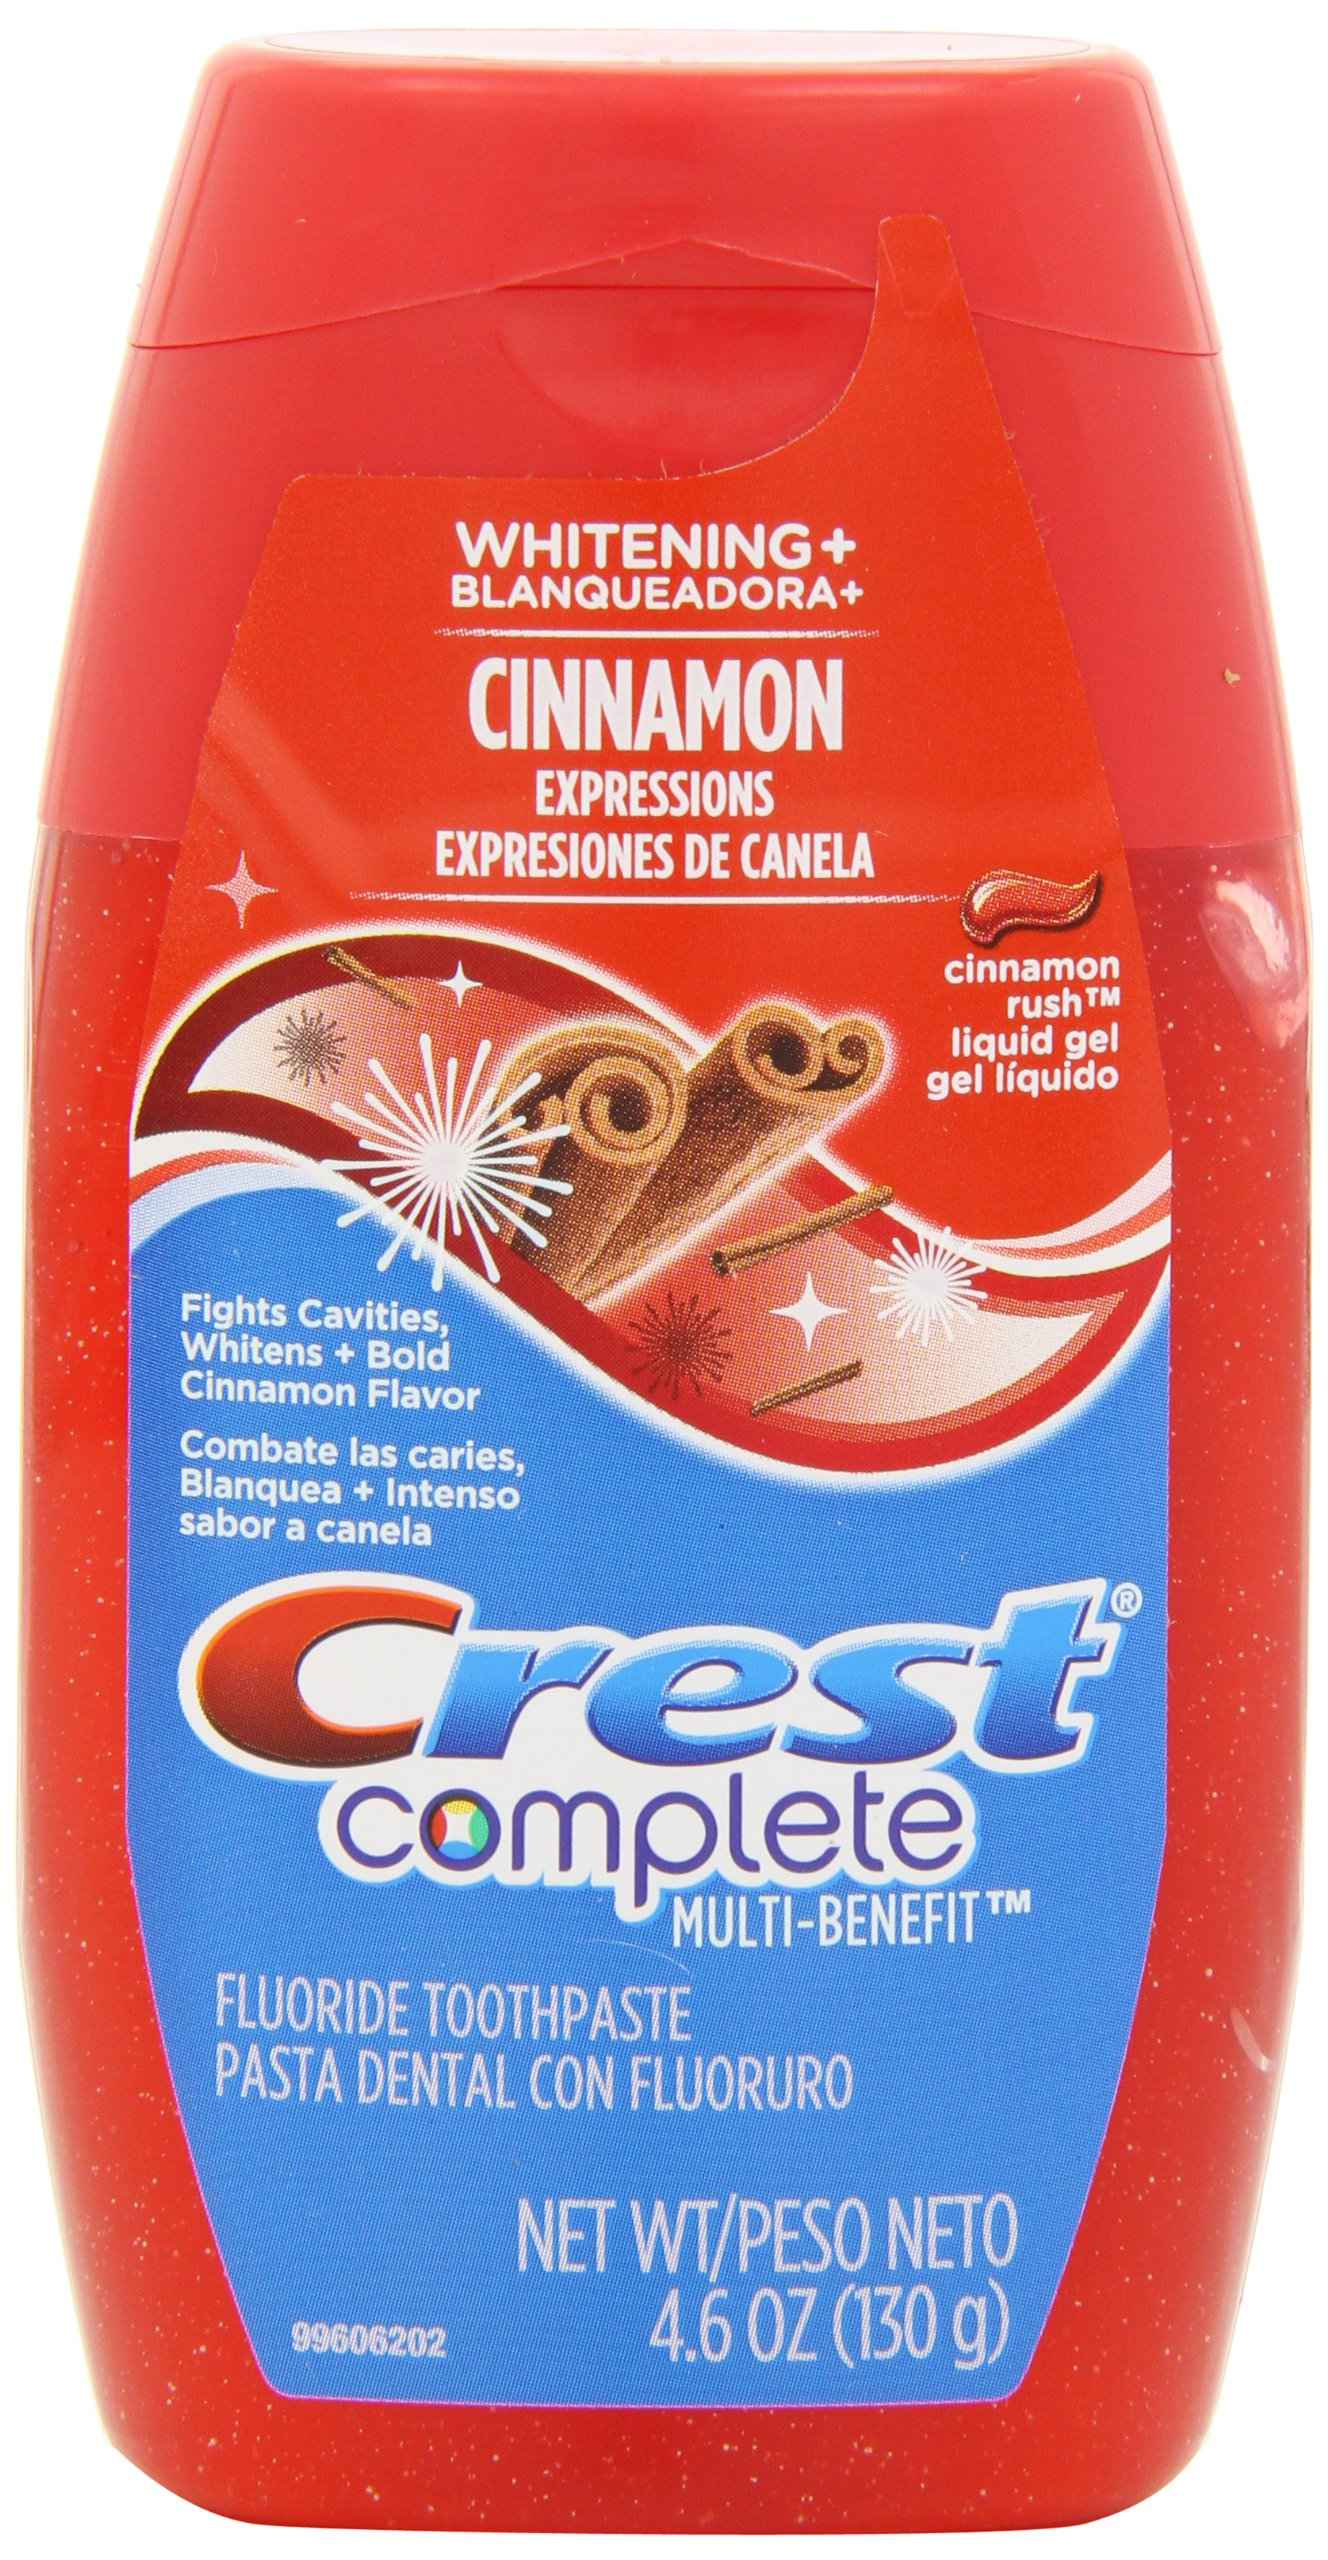 Crest Complete Multi-Benefit Whitening Plus Expressions Cinnamon Rush Liquid Gel Toothpaste 4.6 (Pack